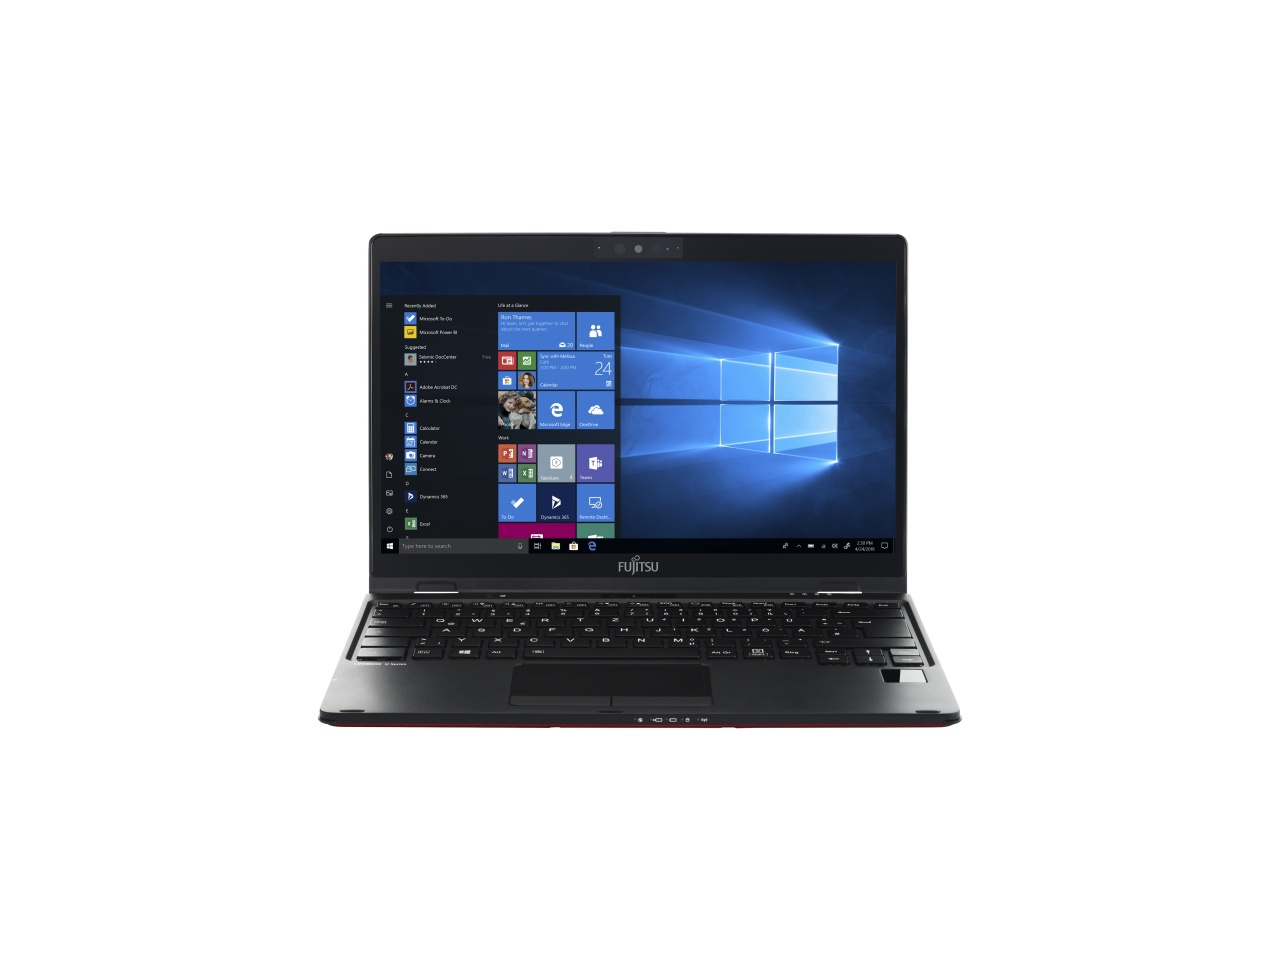 lifebook u939x red front windows screen